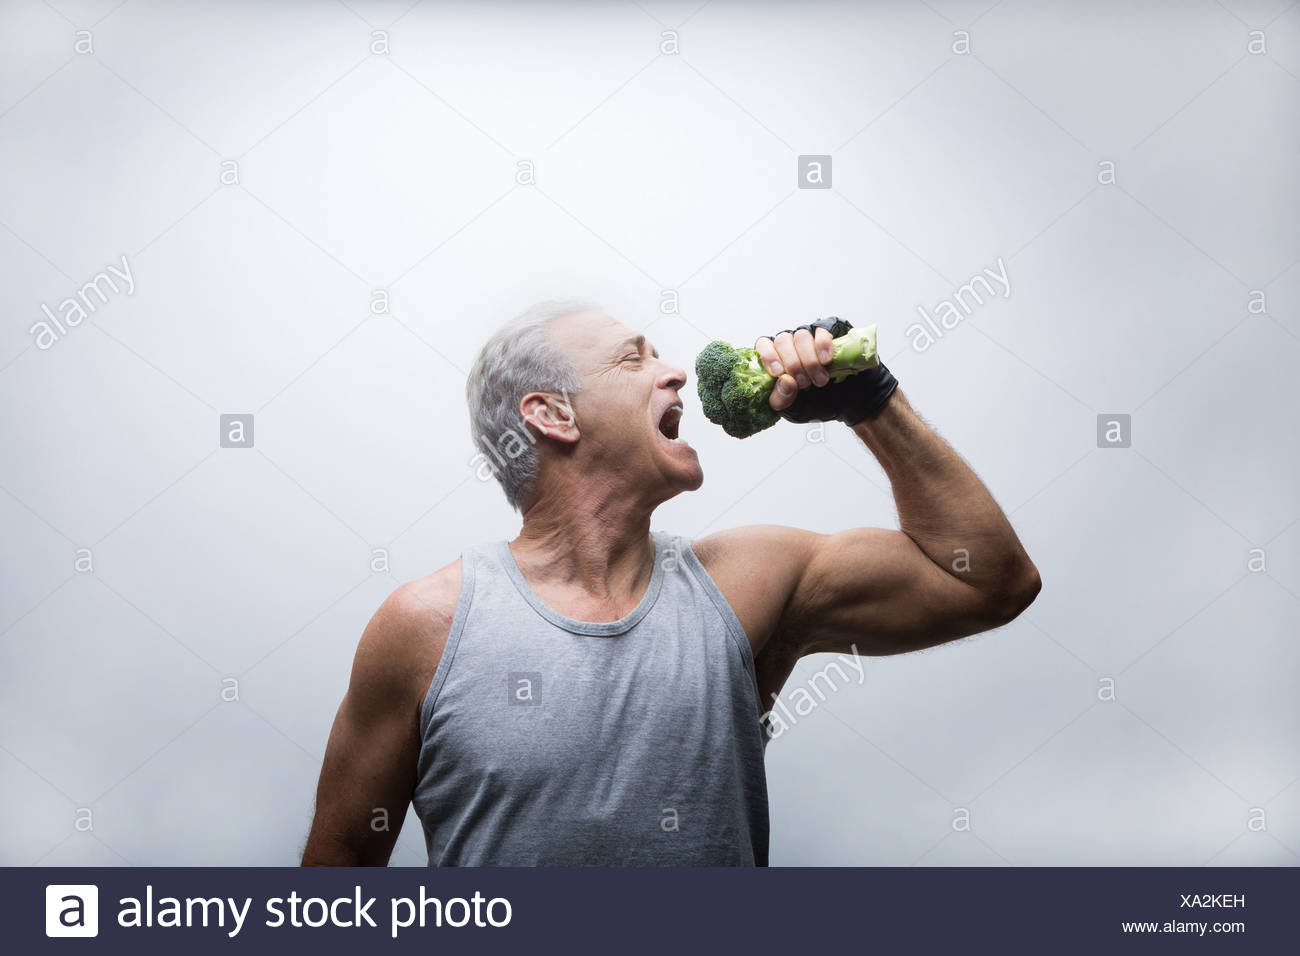 Senior man about to eat broccoli - Stock Image